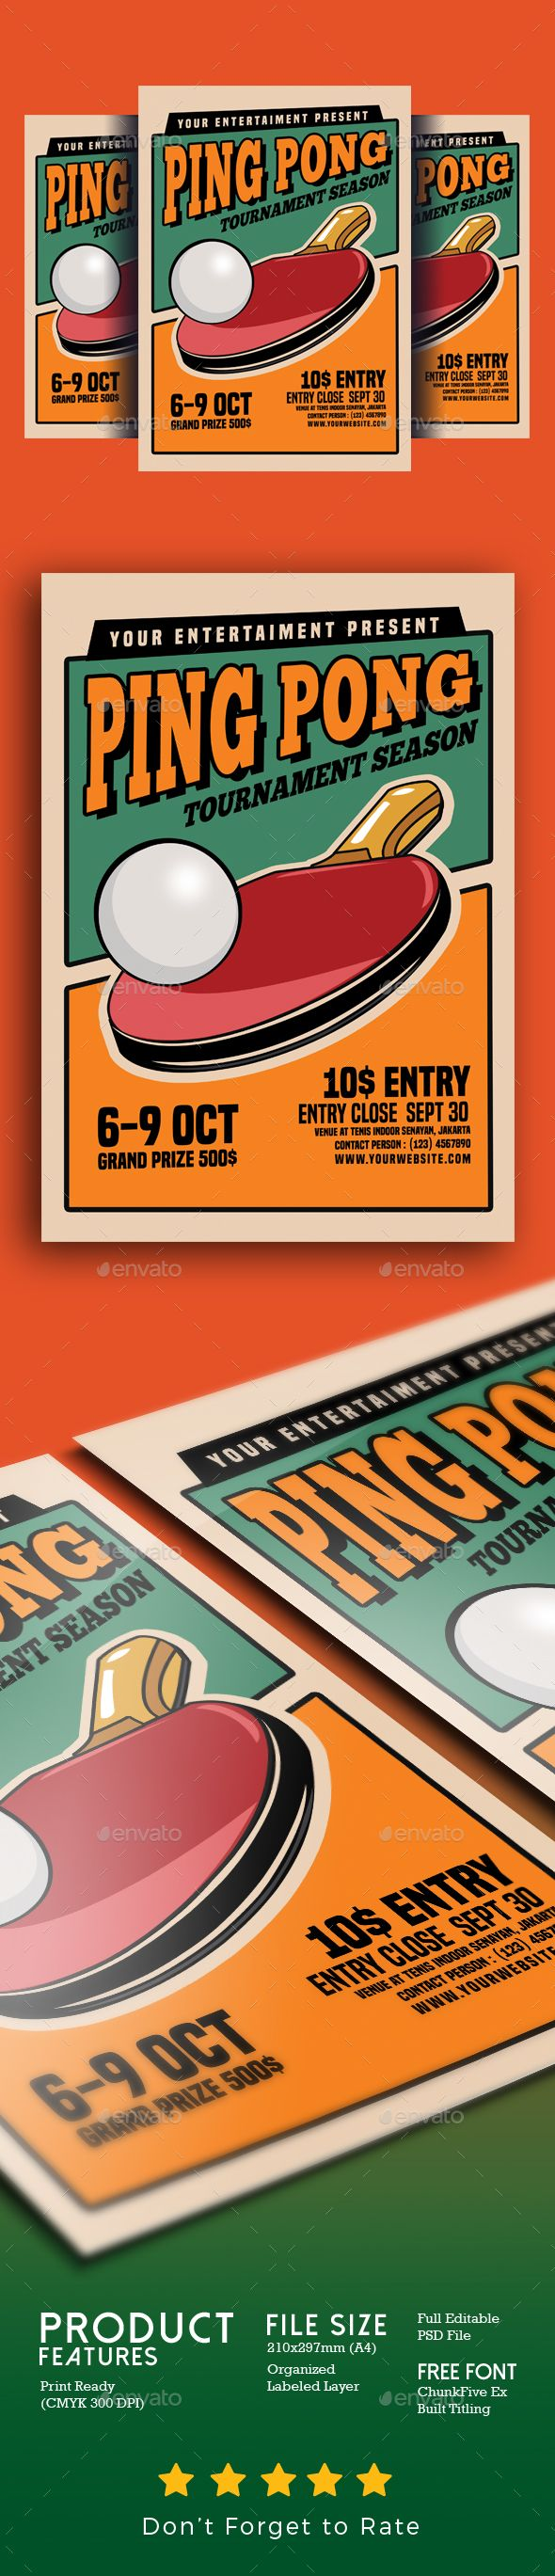 Ping Pong Tournament Flyer | Flyer template, Logos and Event flyers